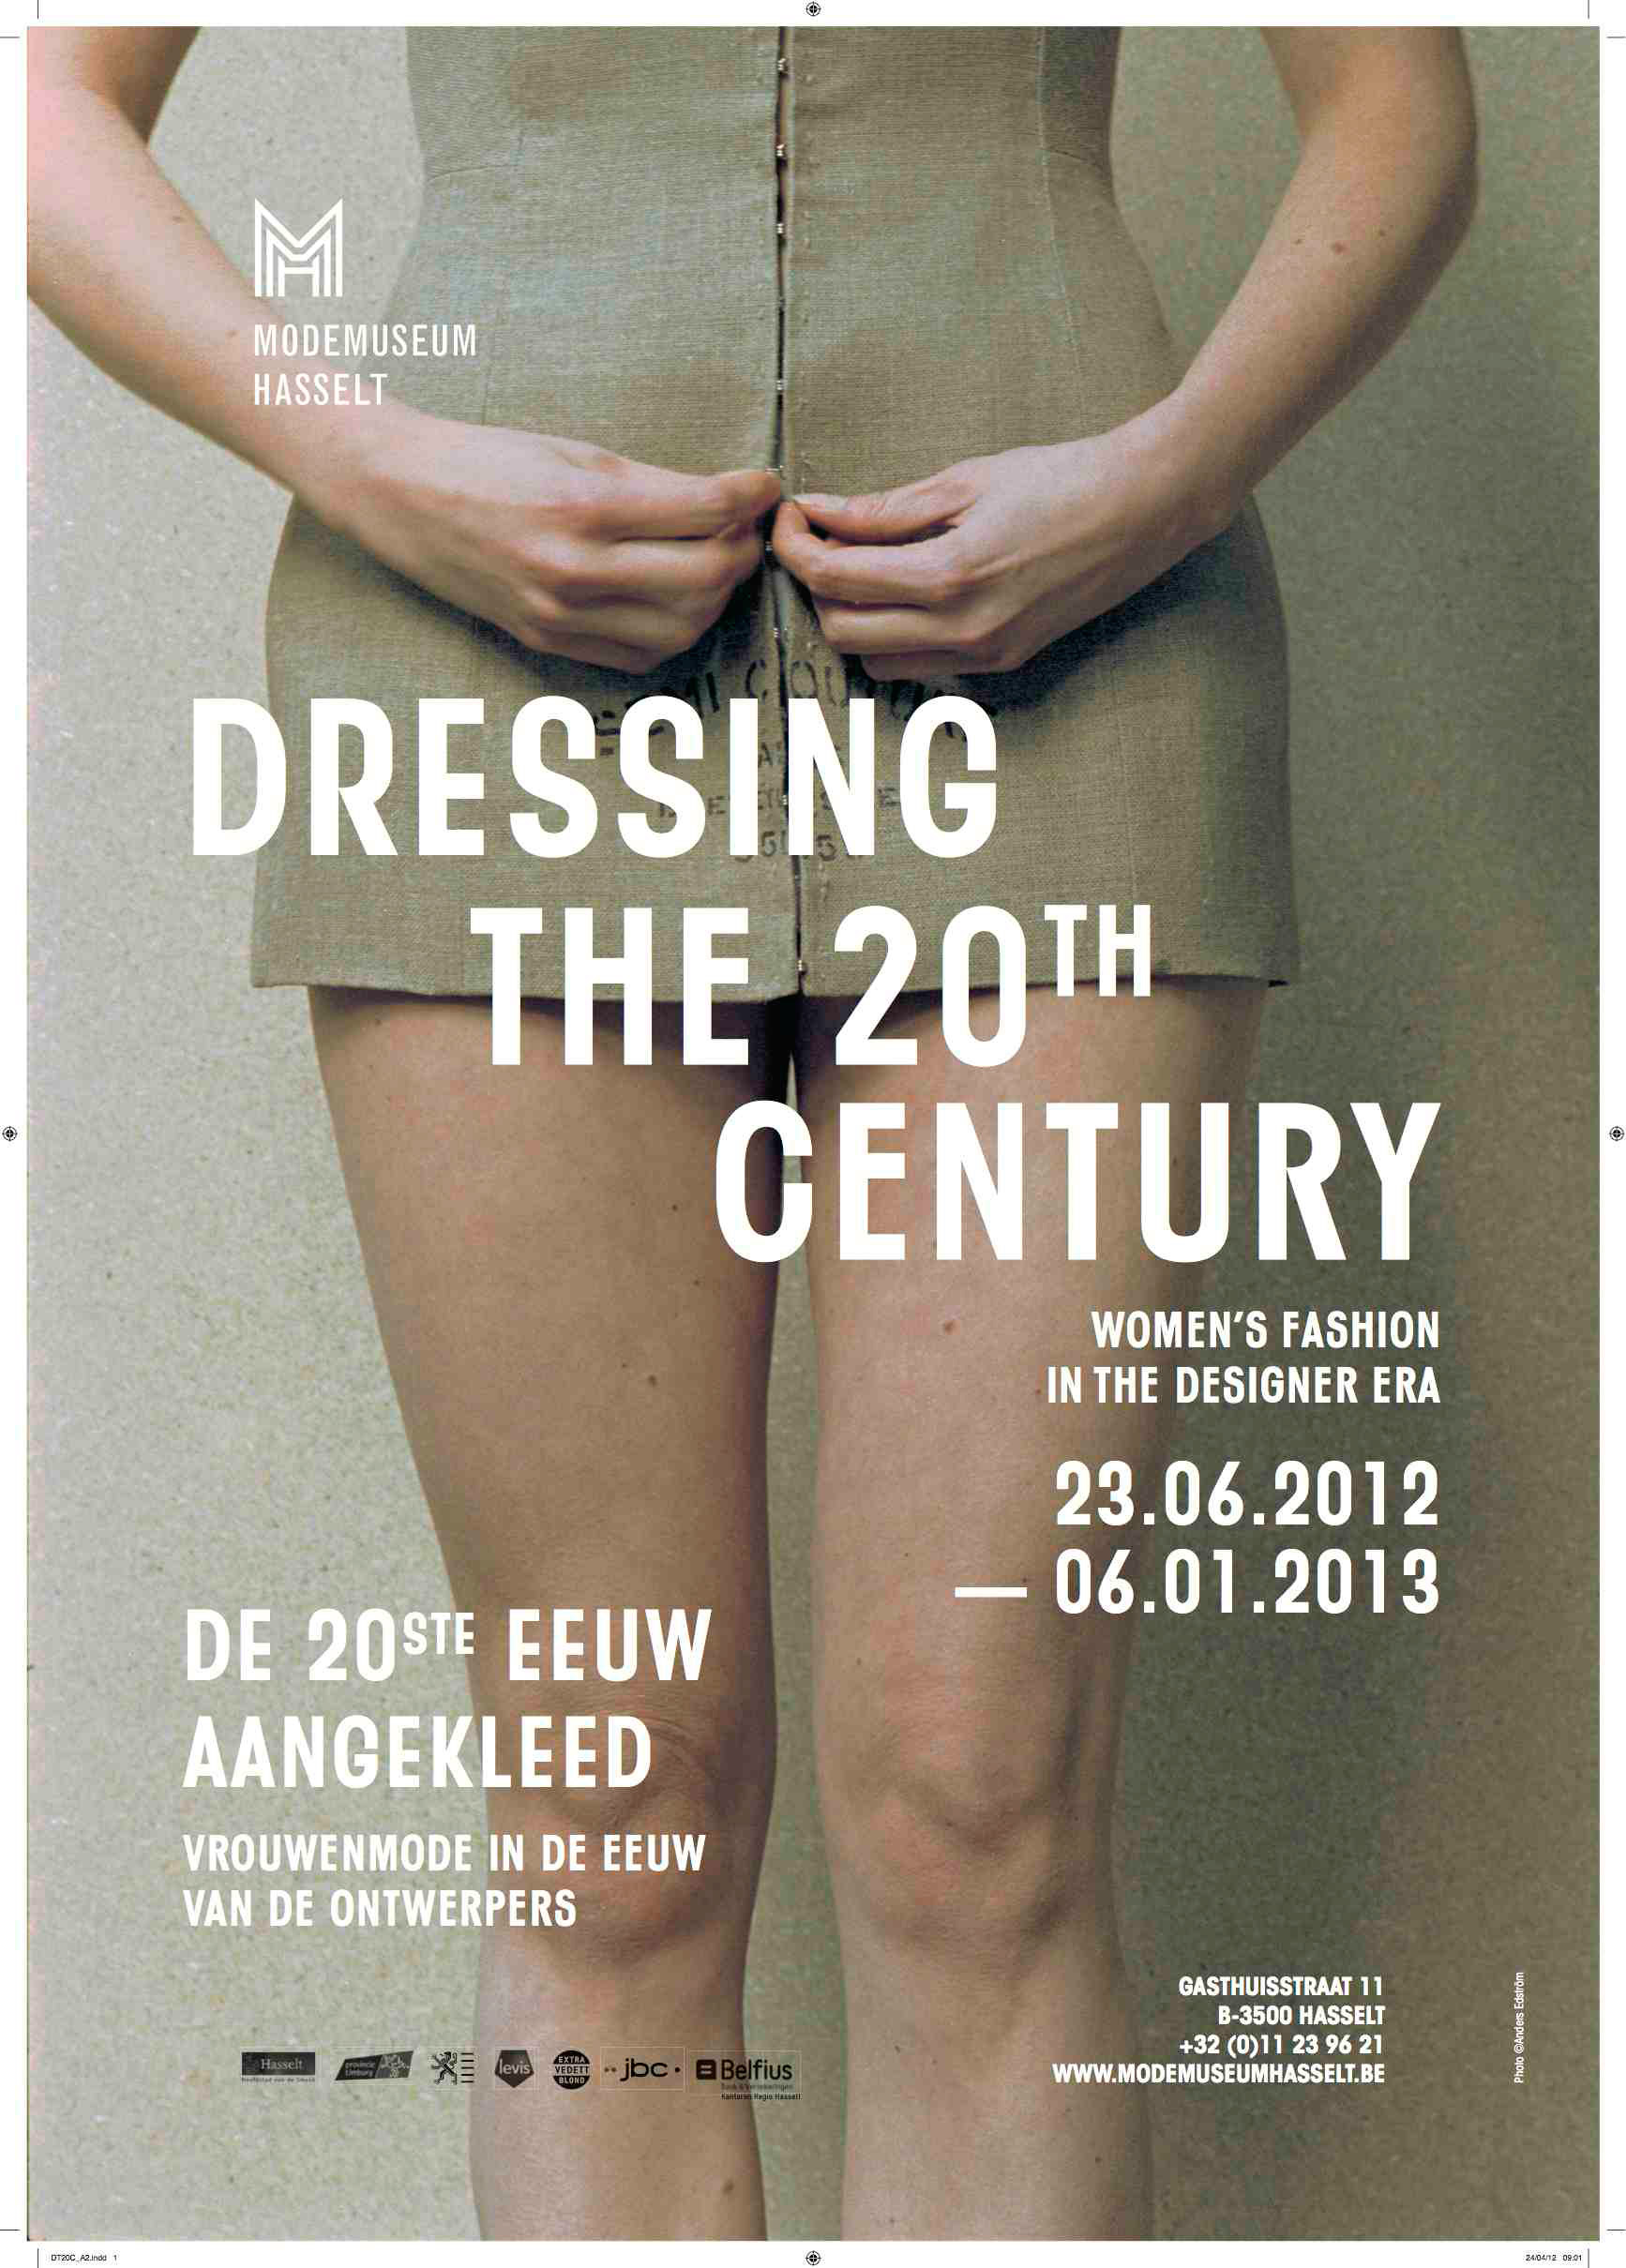 DRESSING THE 20th CENTURY